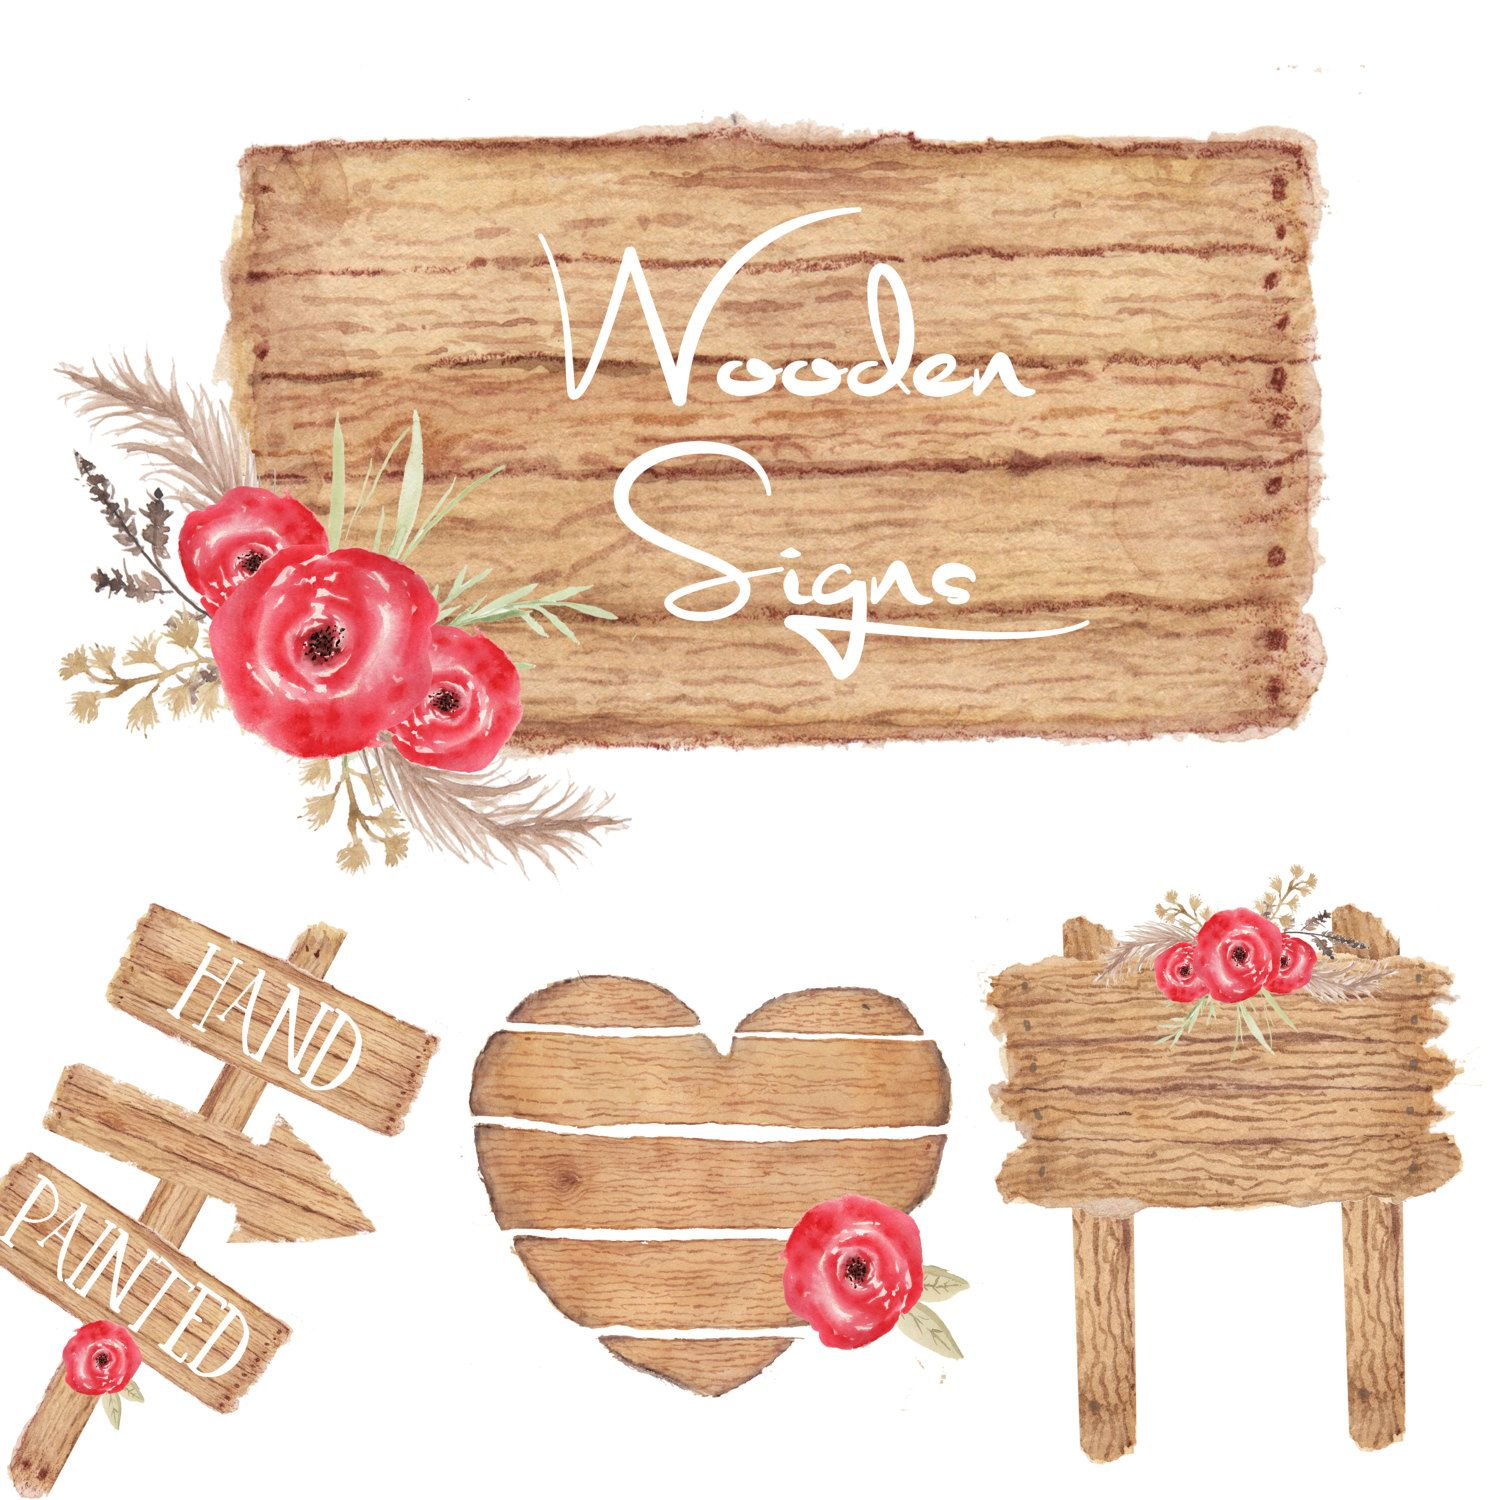 Watercolor Wooden Sign Clipart Wood Rustic Roses By GiddyPopGraphics